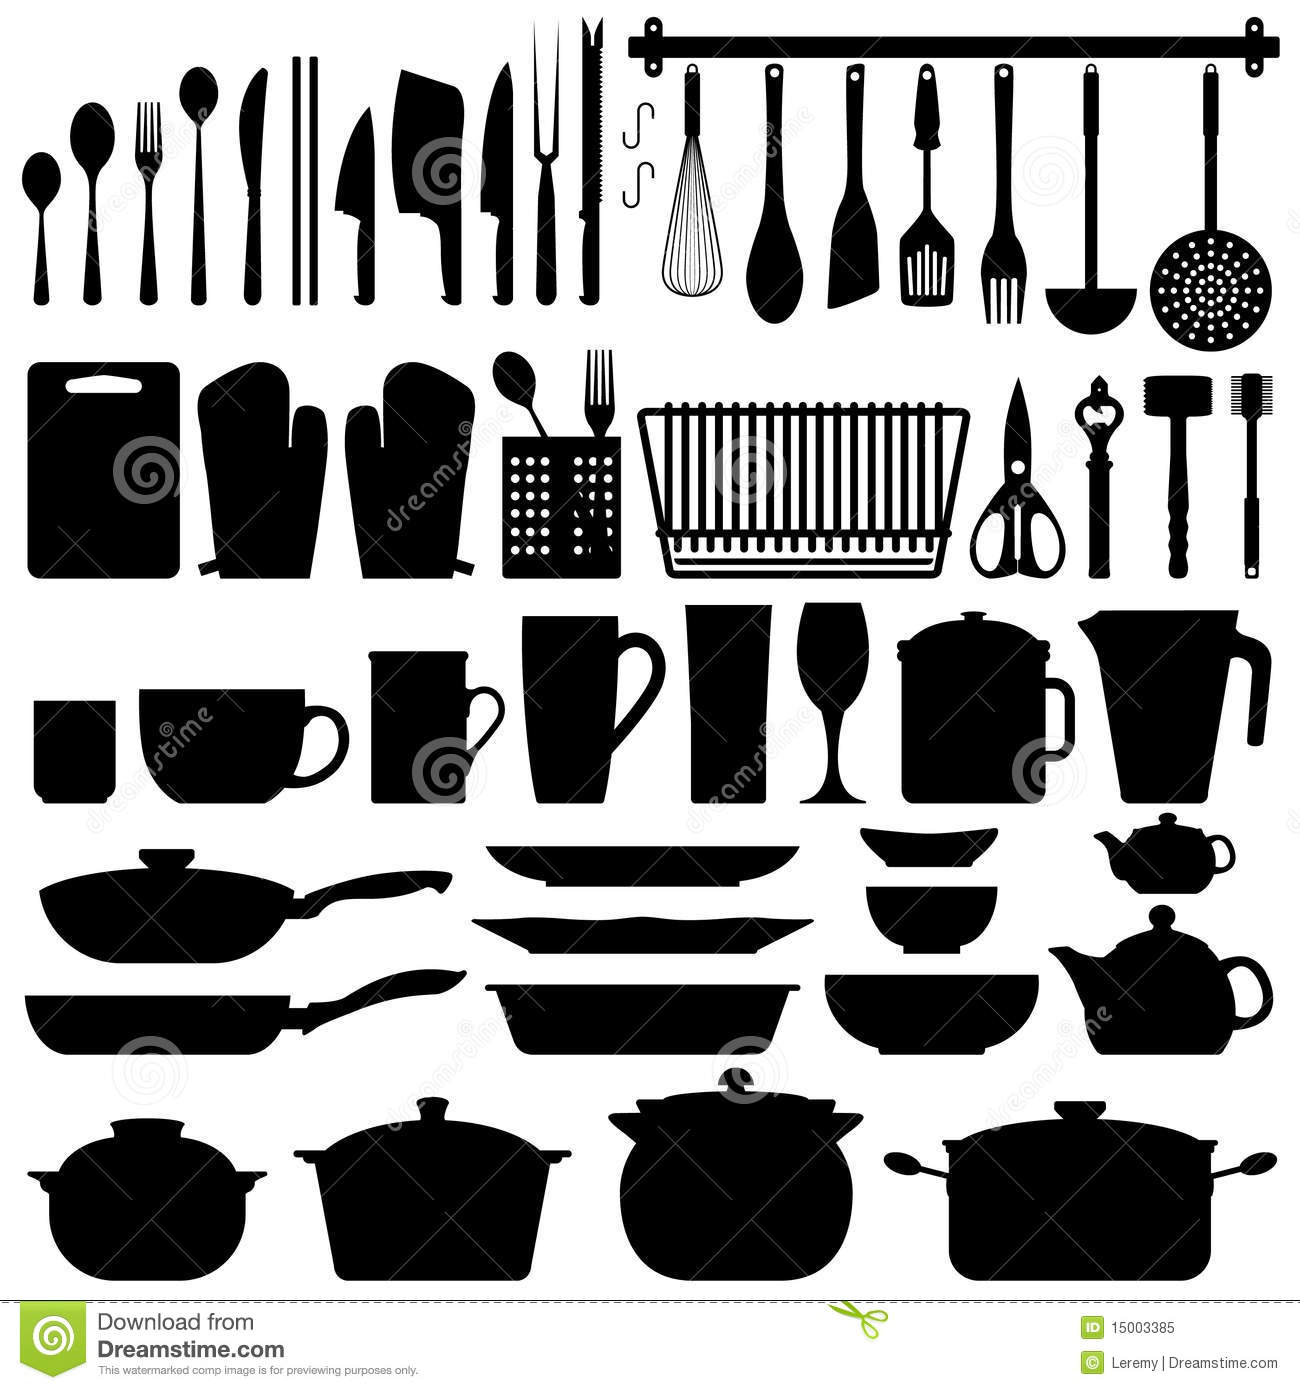 Kitchen Utensils Silhouette Vector Royalty Free Stock ...